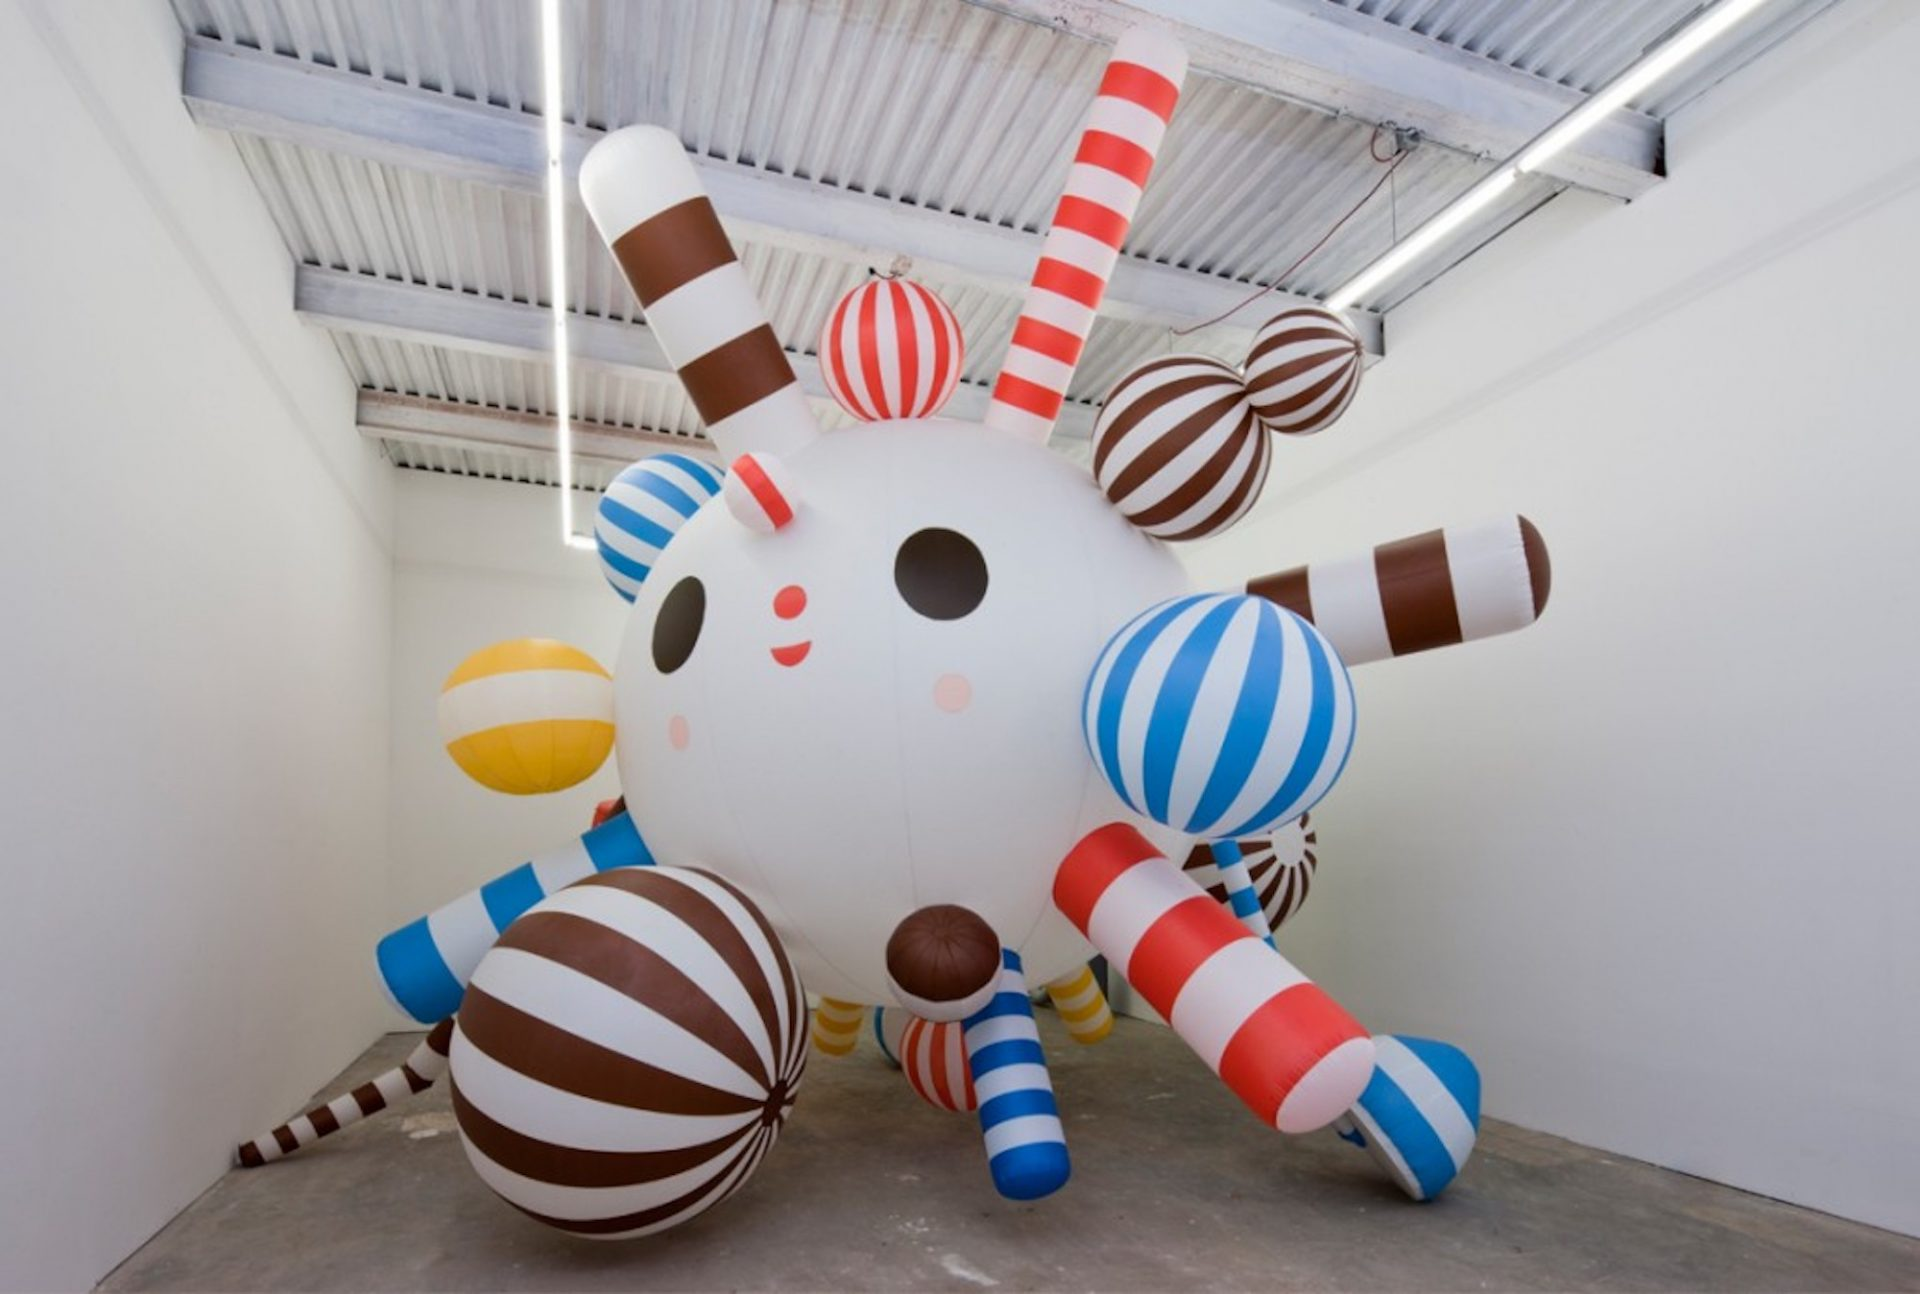 Starburst - Ripstop Nylon ( inflatable sculpture ), 300 inches diameter, 2011